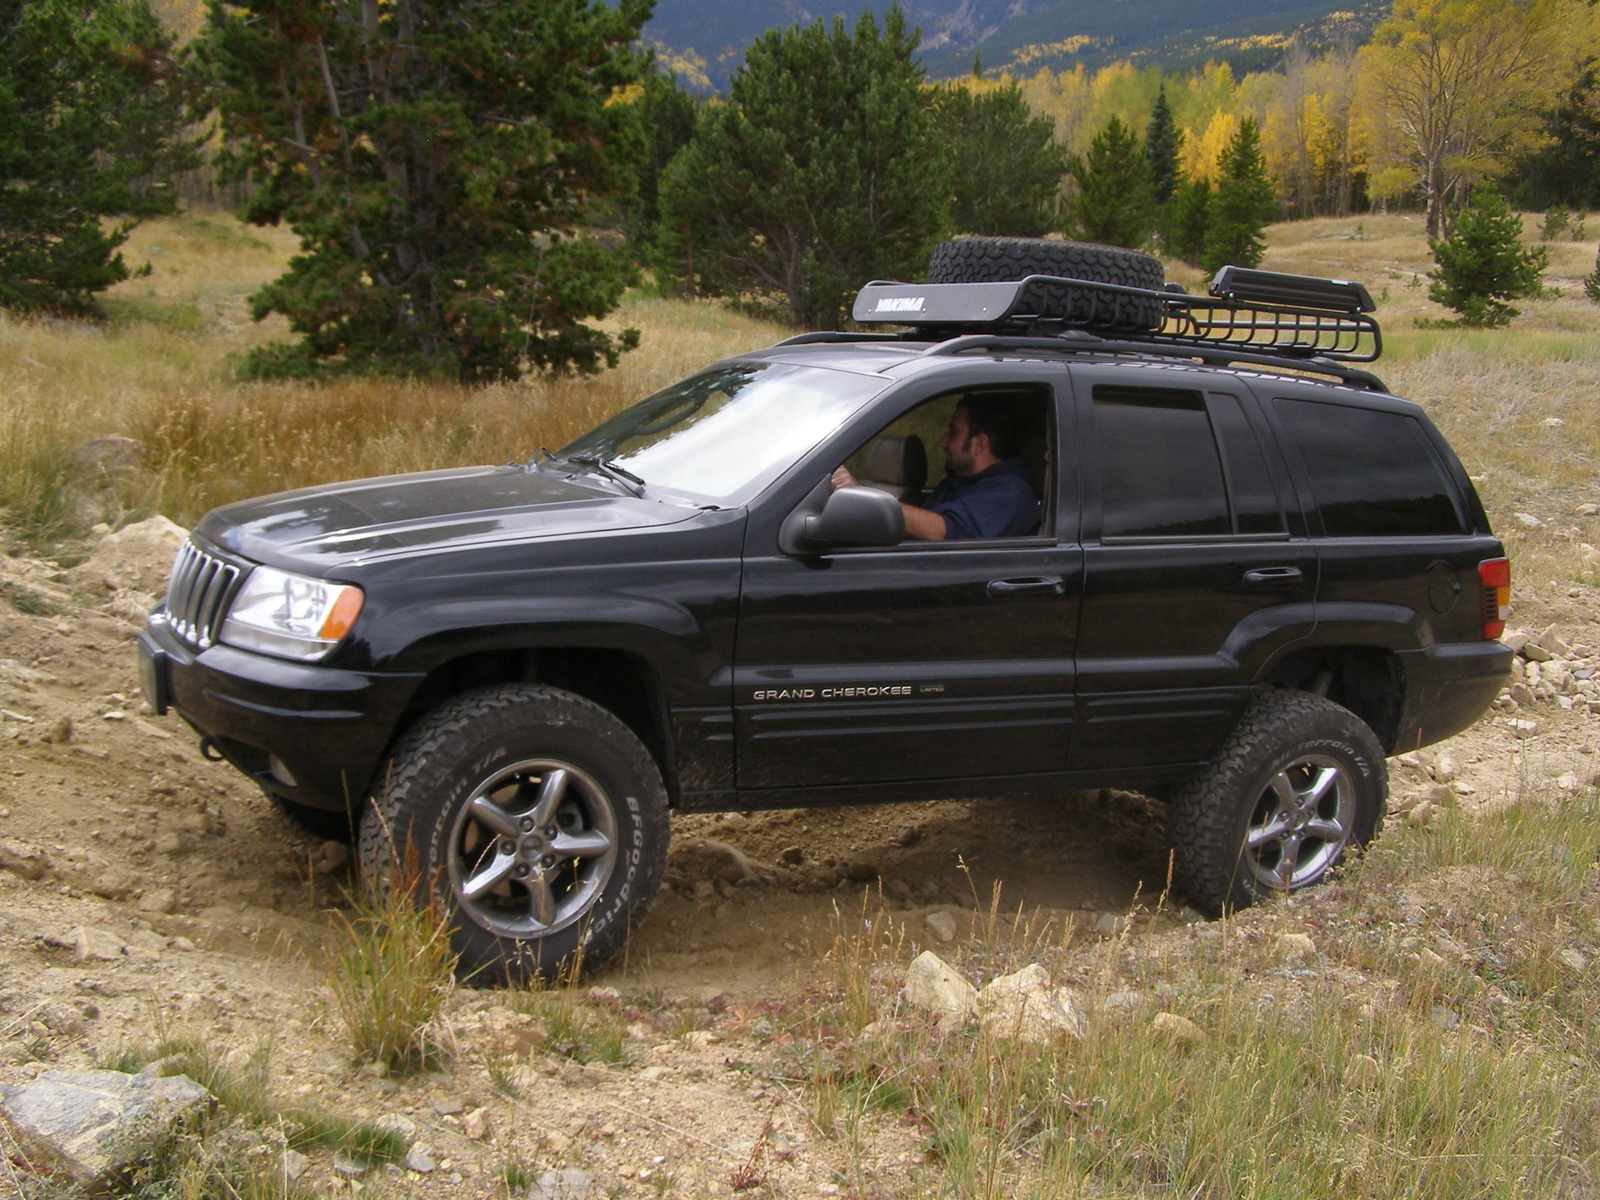 jeep grand cherokee picture - photo #35